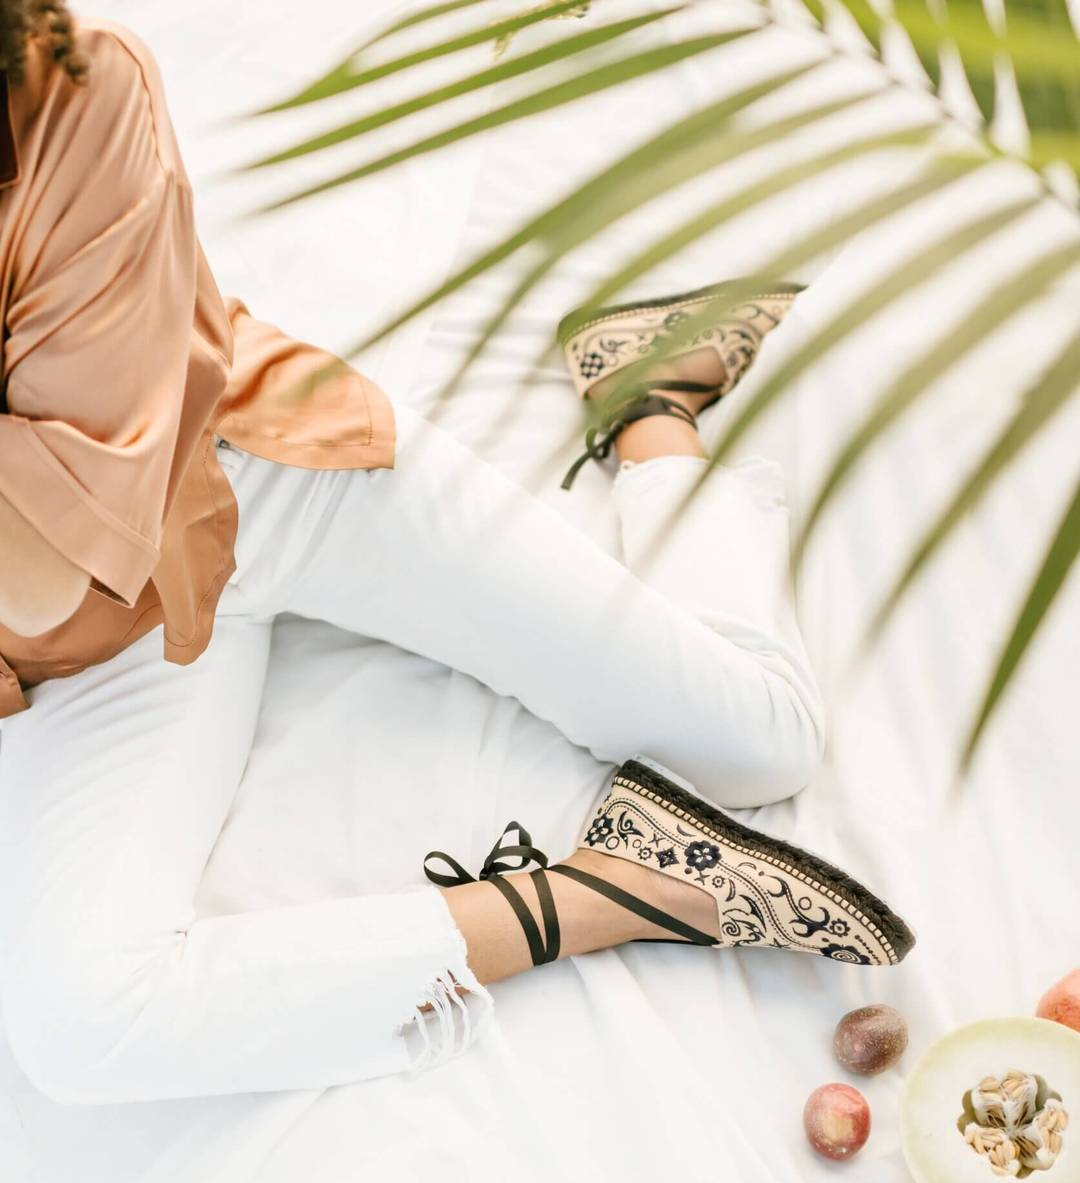 model wearing the closed-toe espadrilles in tan with black illustrations all over them, a black sole, and black laces wrapped around the ankles